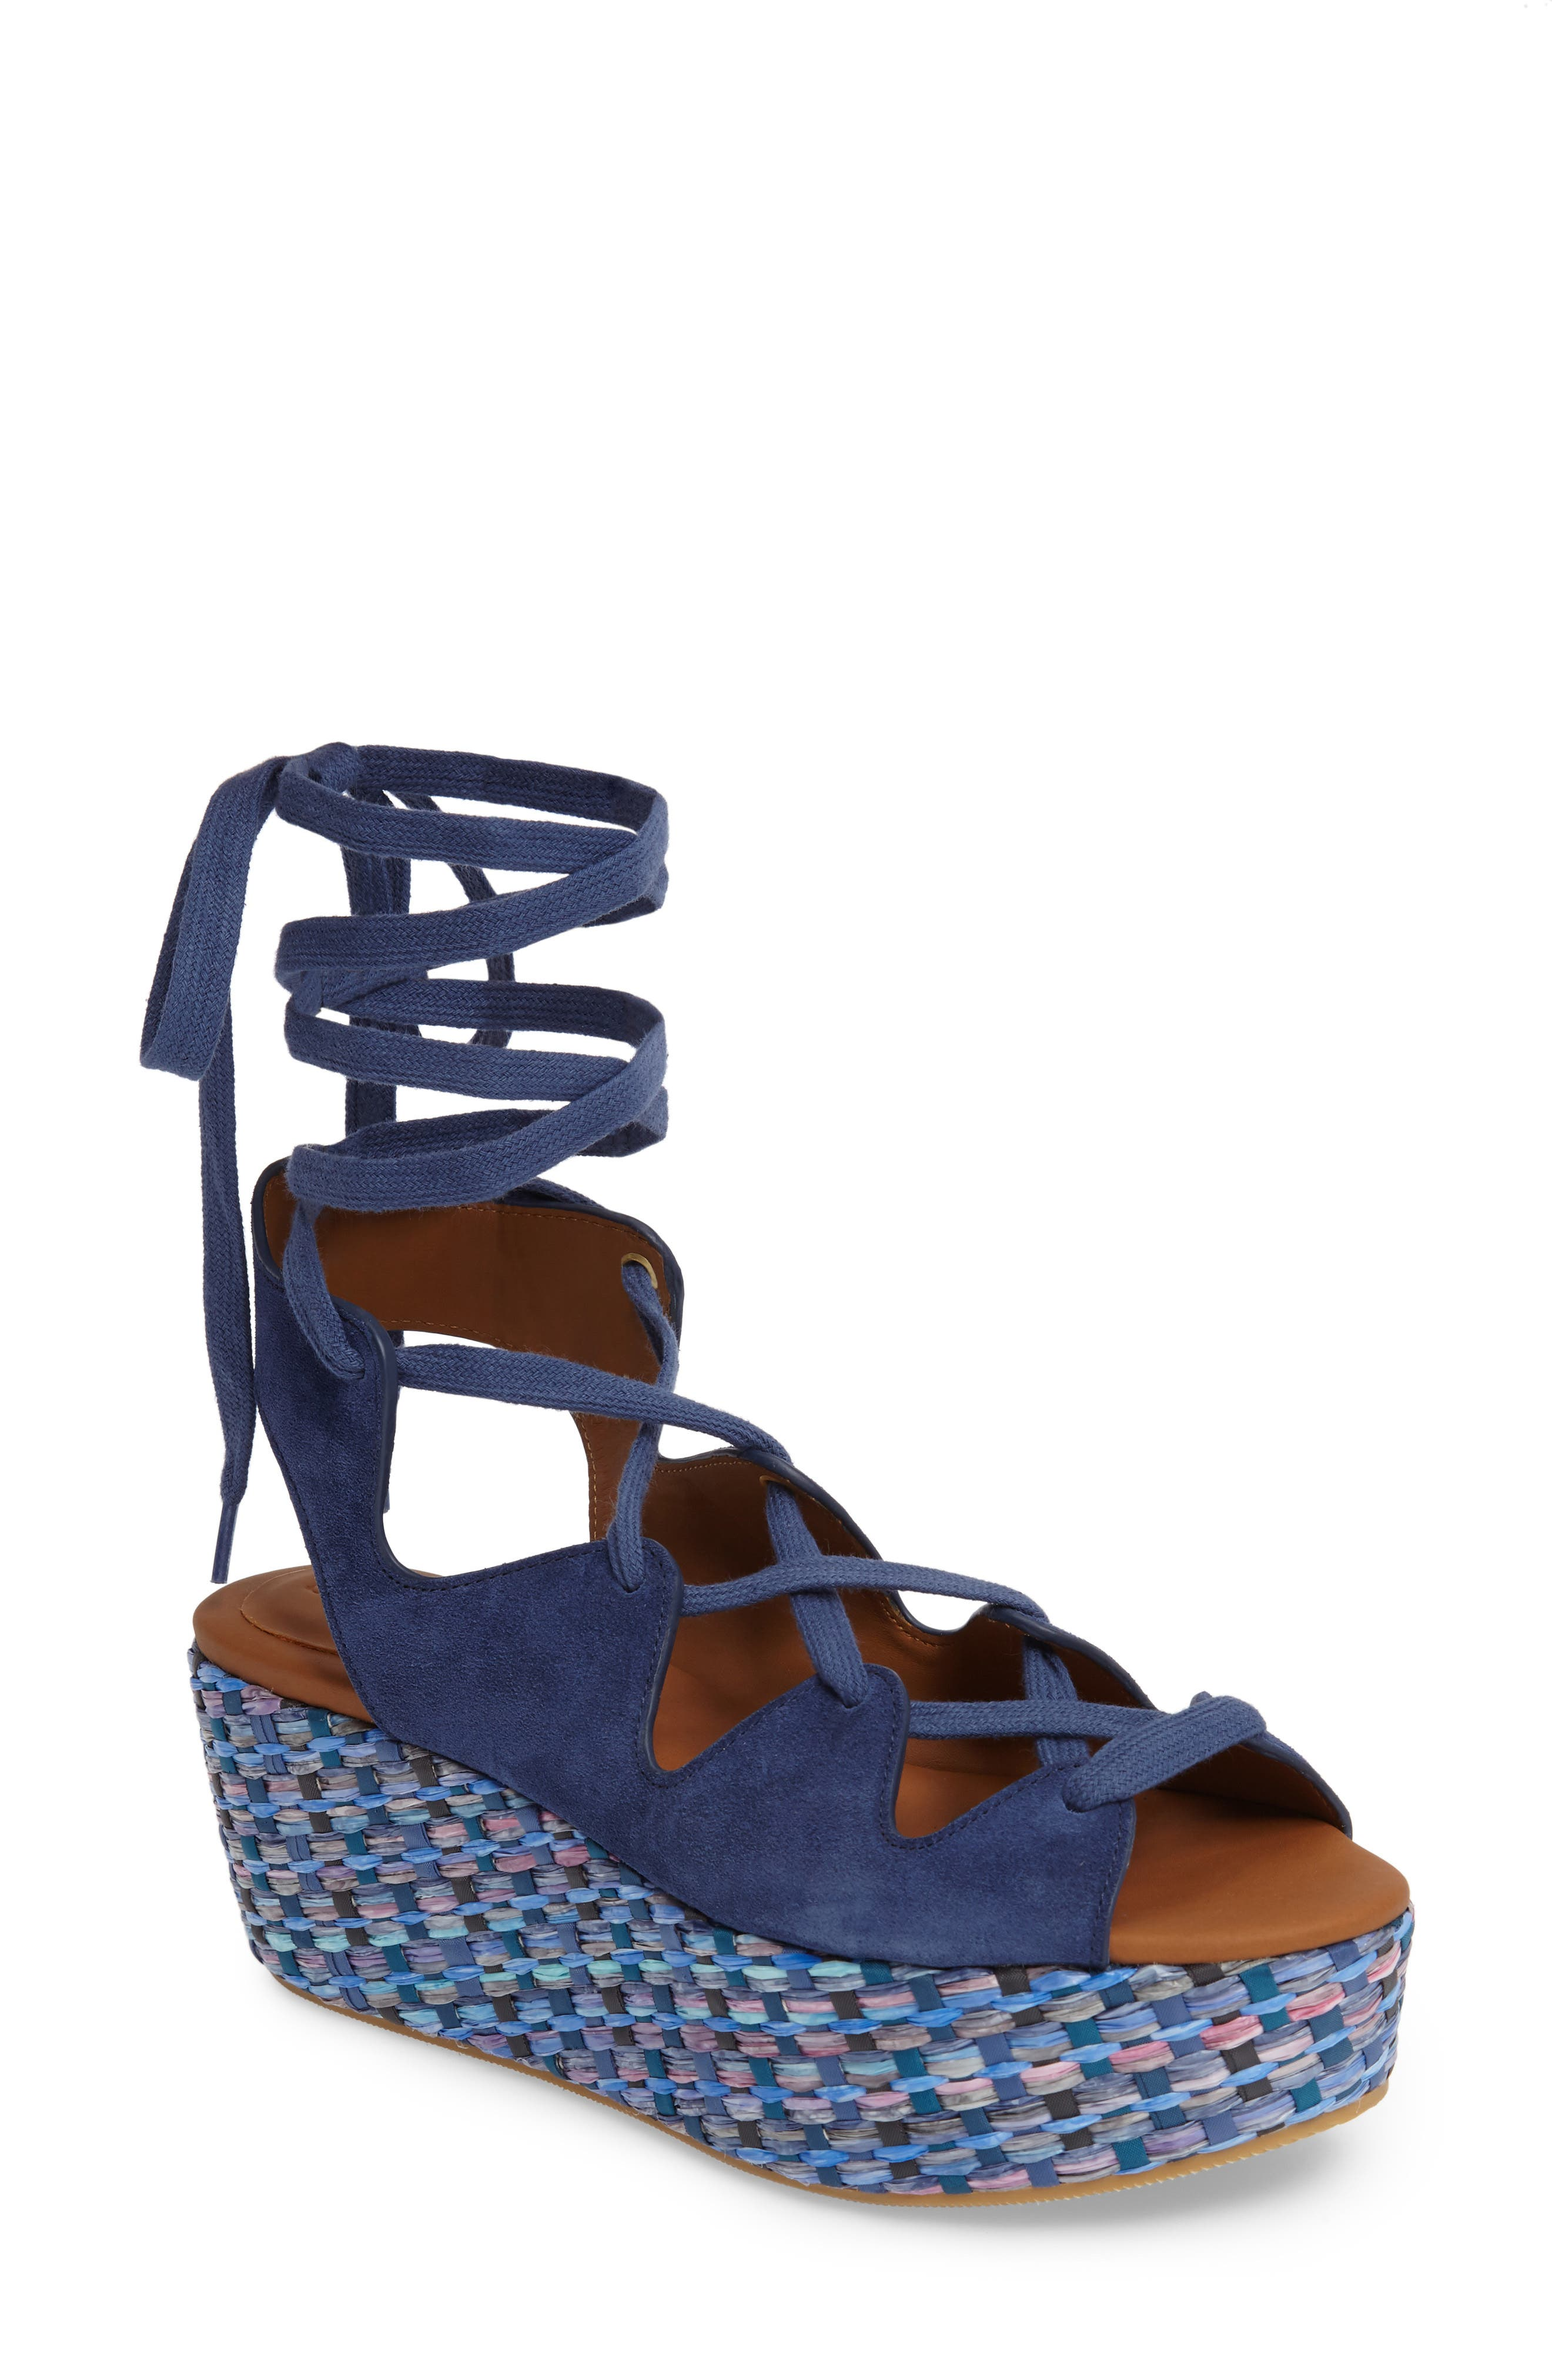 'Liana' Platform Wedge Sandal,                             Main thumbnail 1, color,                             Sugar